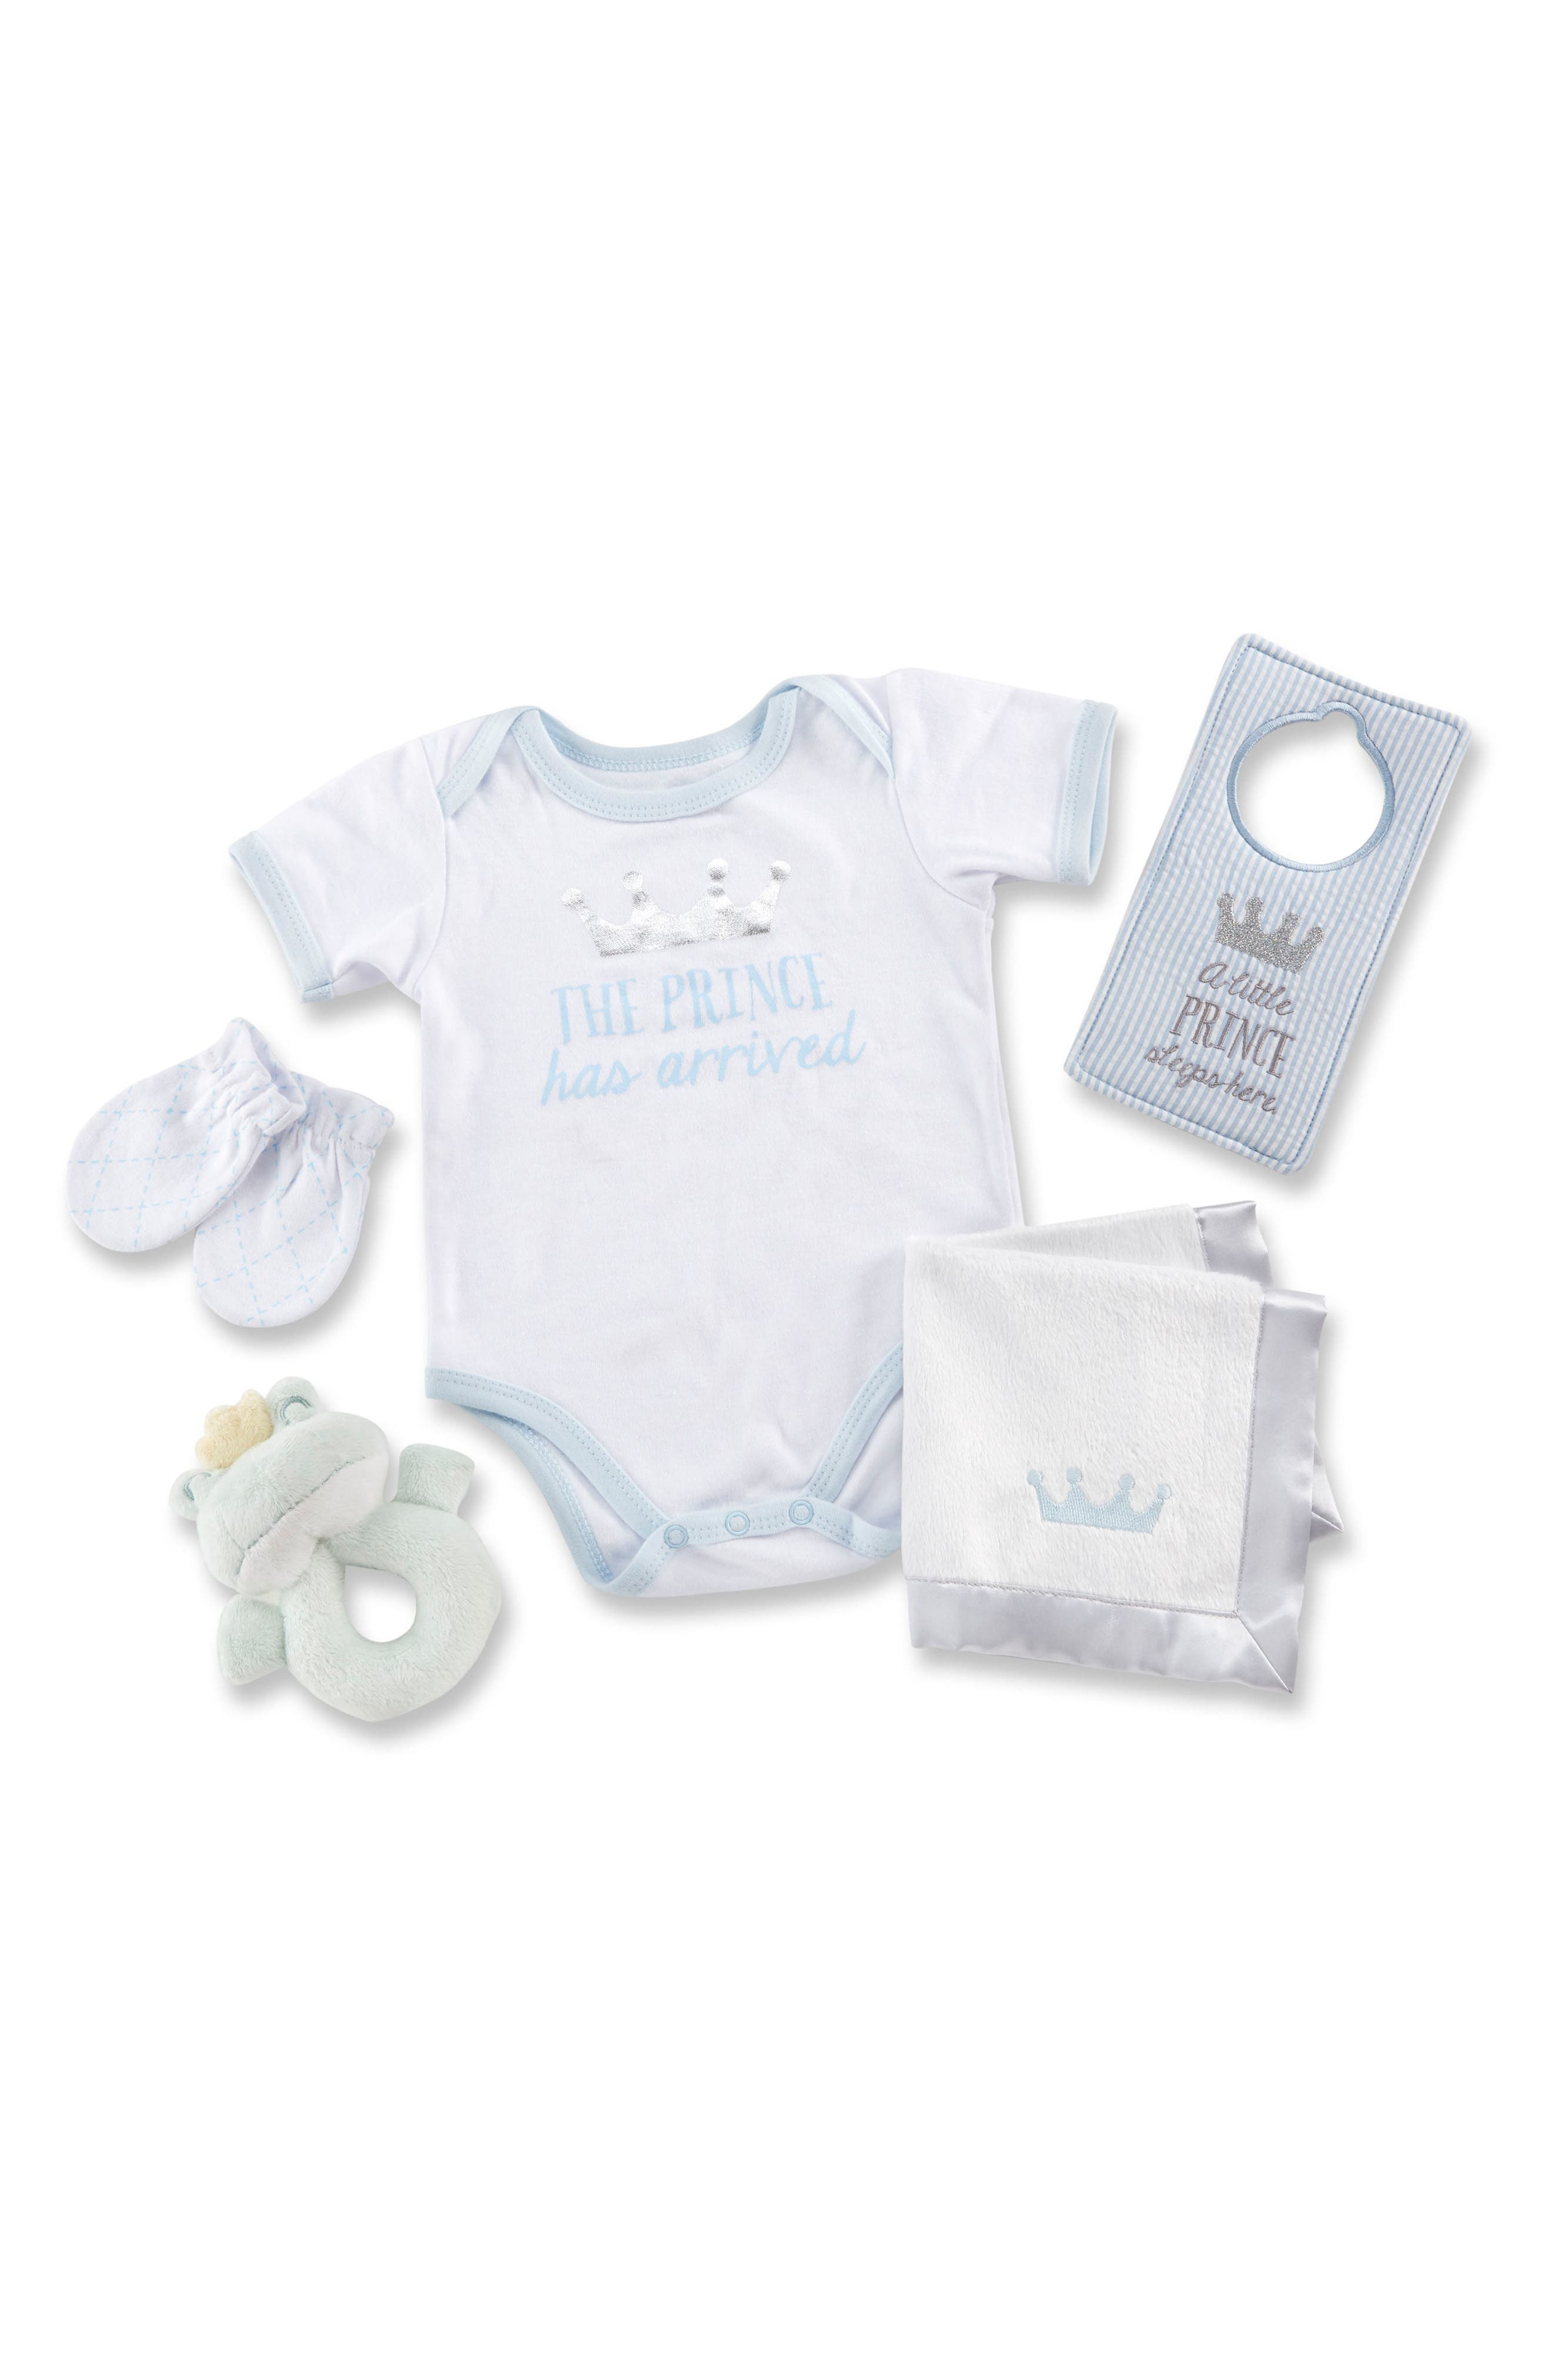 Little Prince Welcome Home Gift Set,                         Main,                         color, White, Blue, Silver And Green